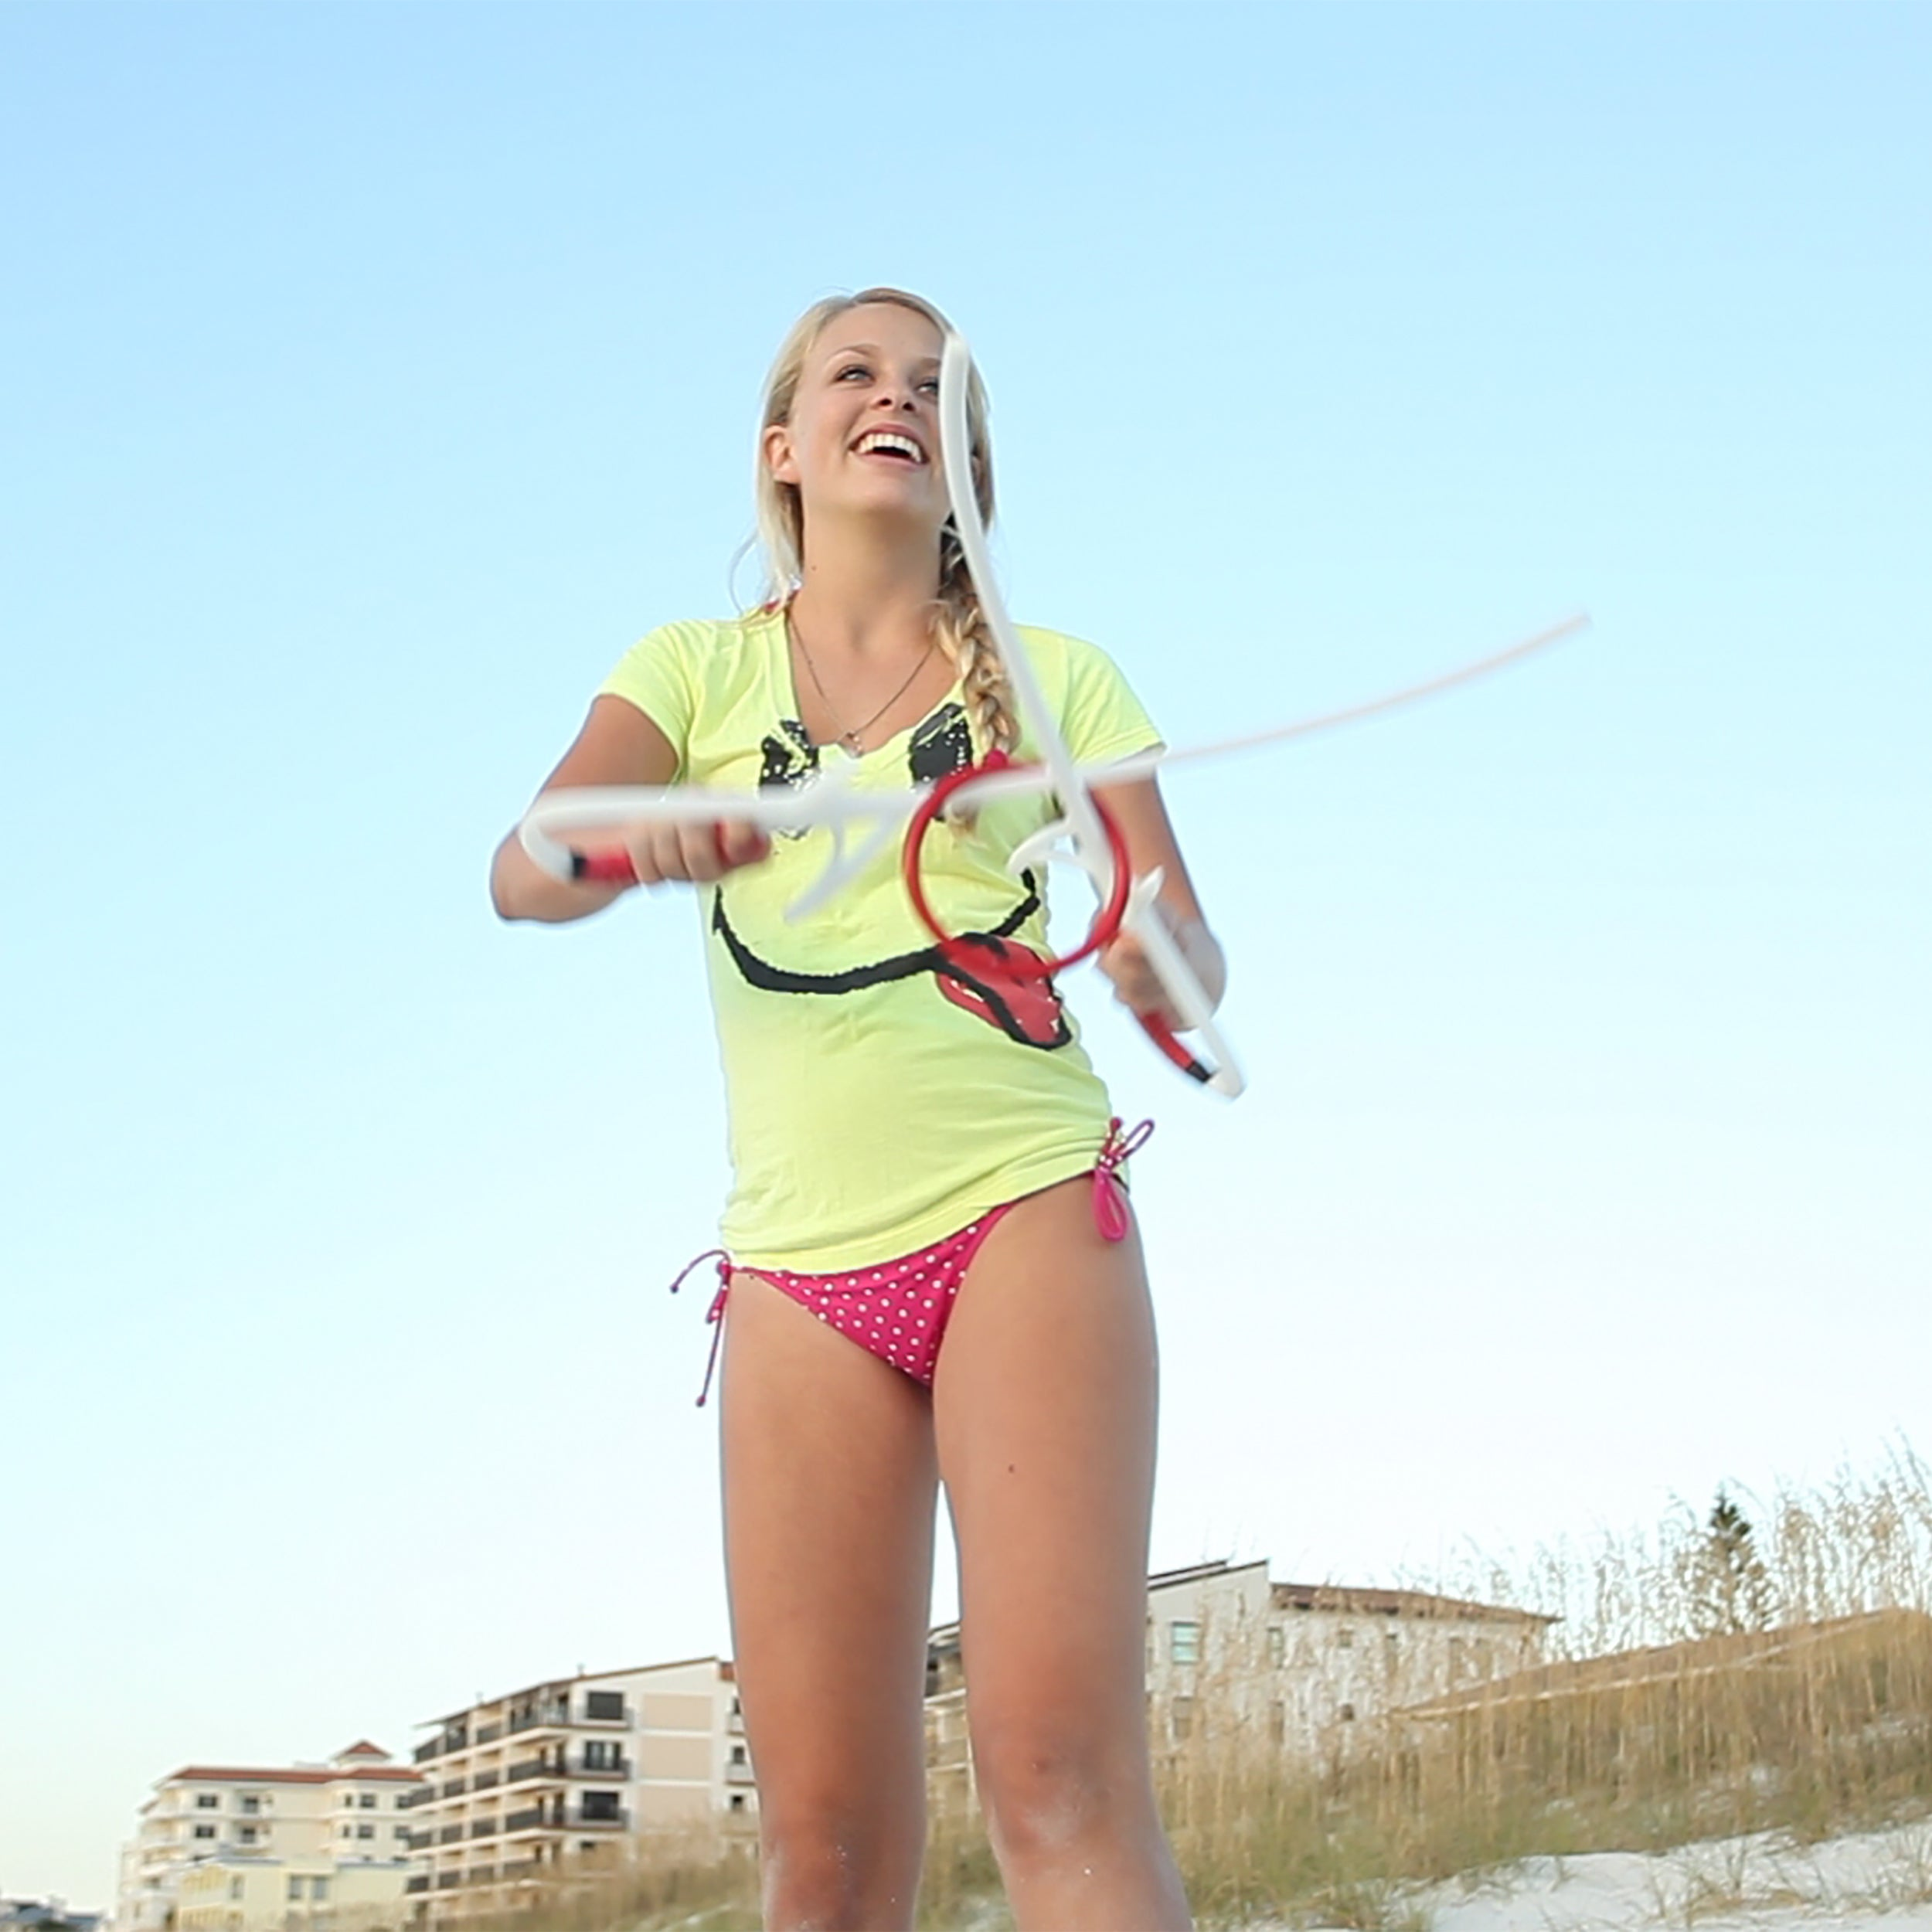 Girl smiling while tossing her ring out of her Stix by RingStix